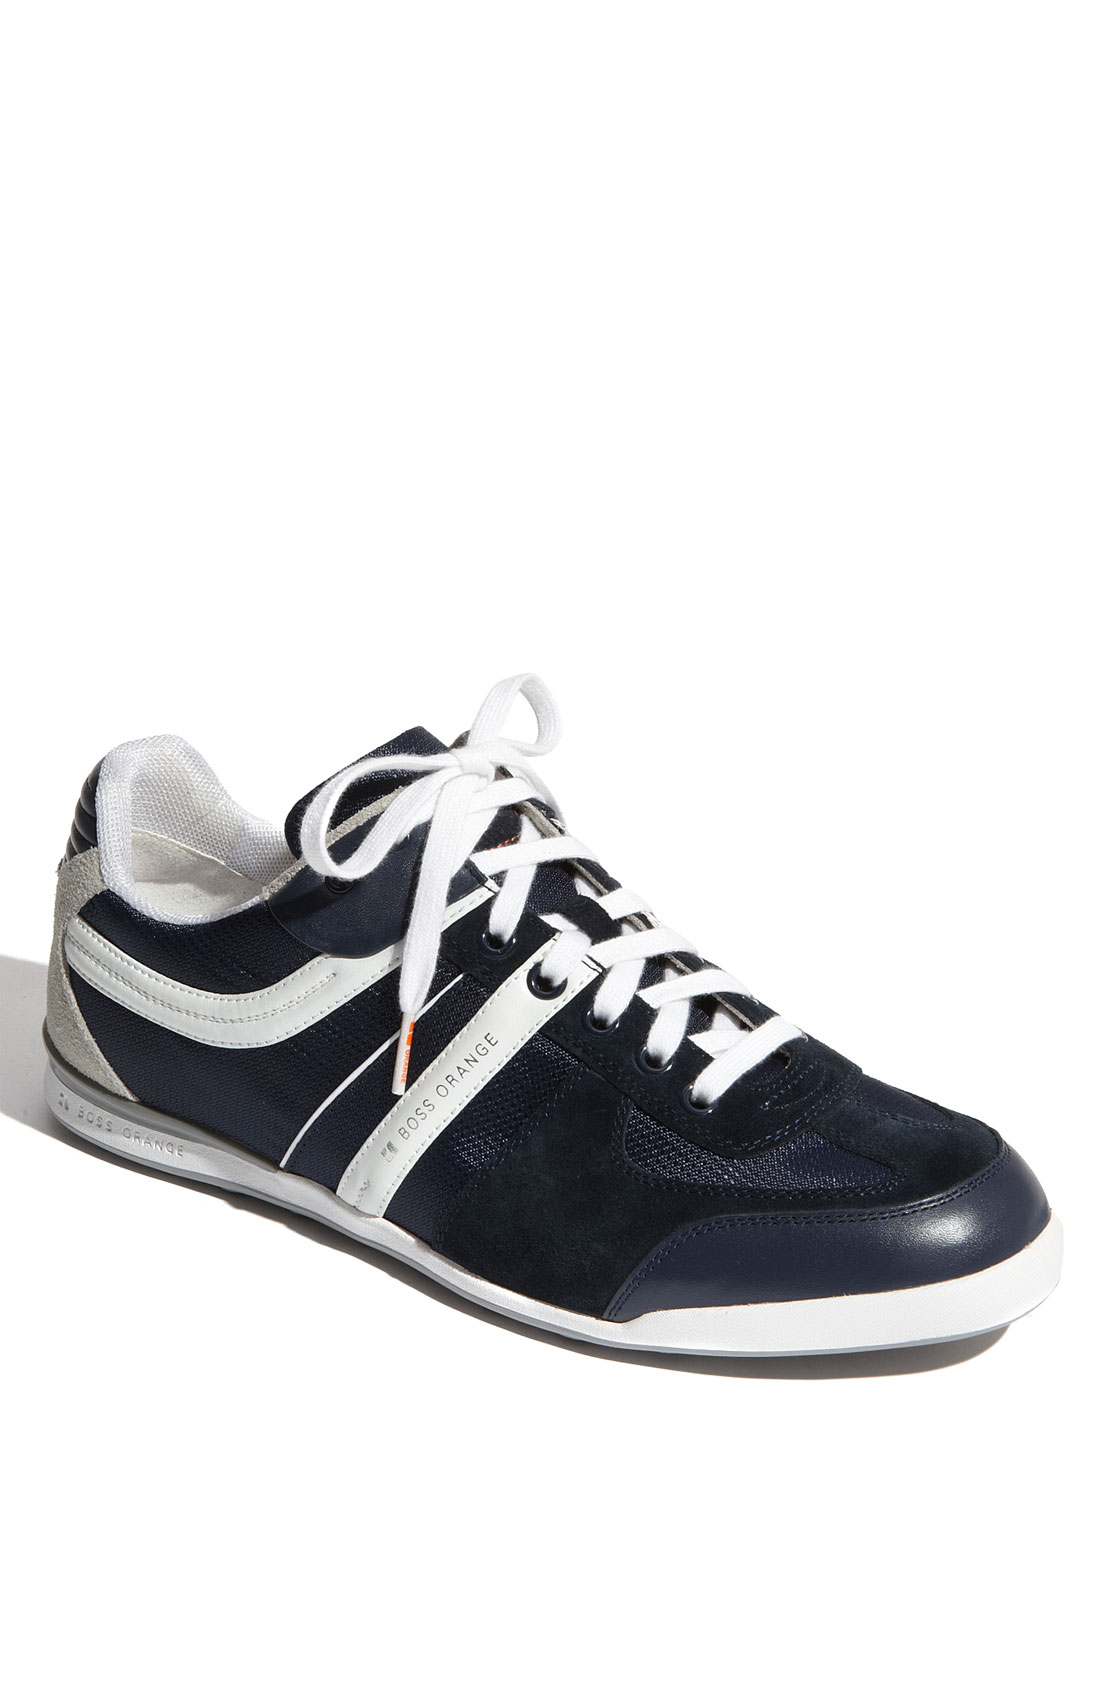 hugo boss boss orange kempton sneaker in blue for men navy lyst. Black Bedroom Furniture Sets. Home Design Ideas